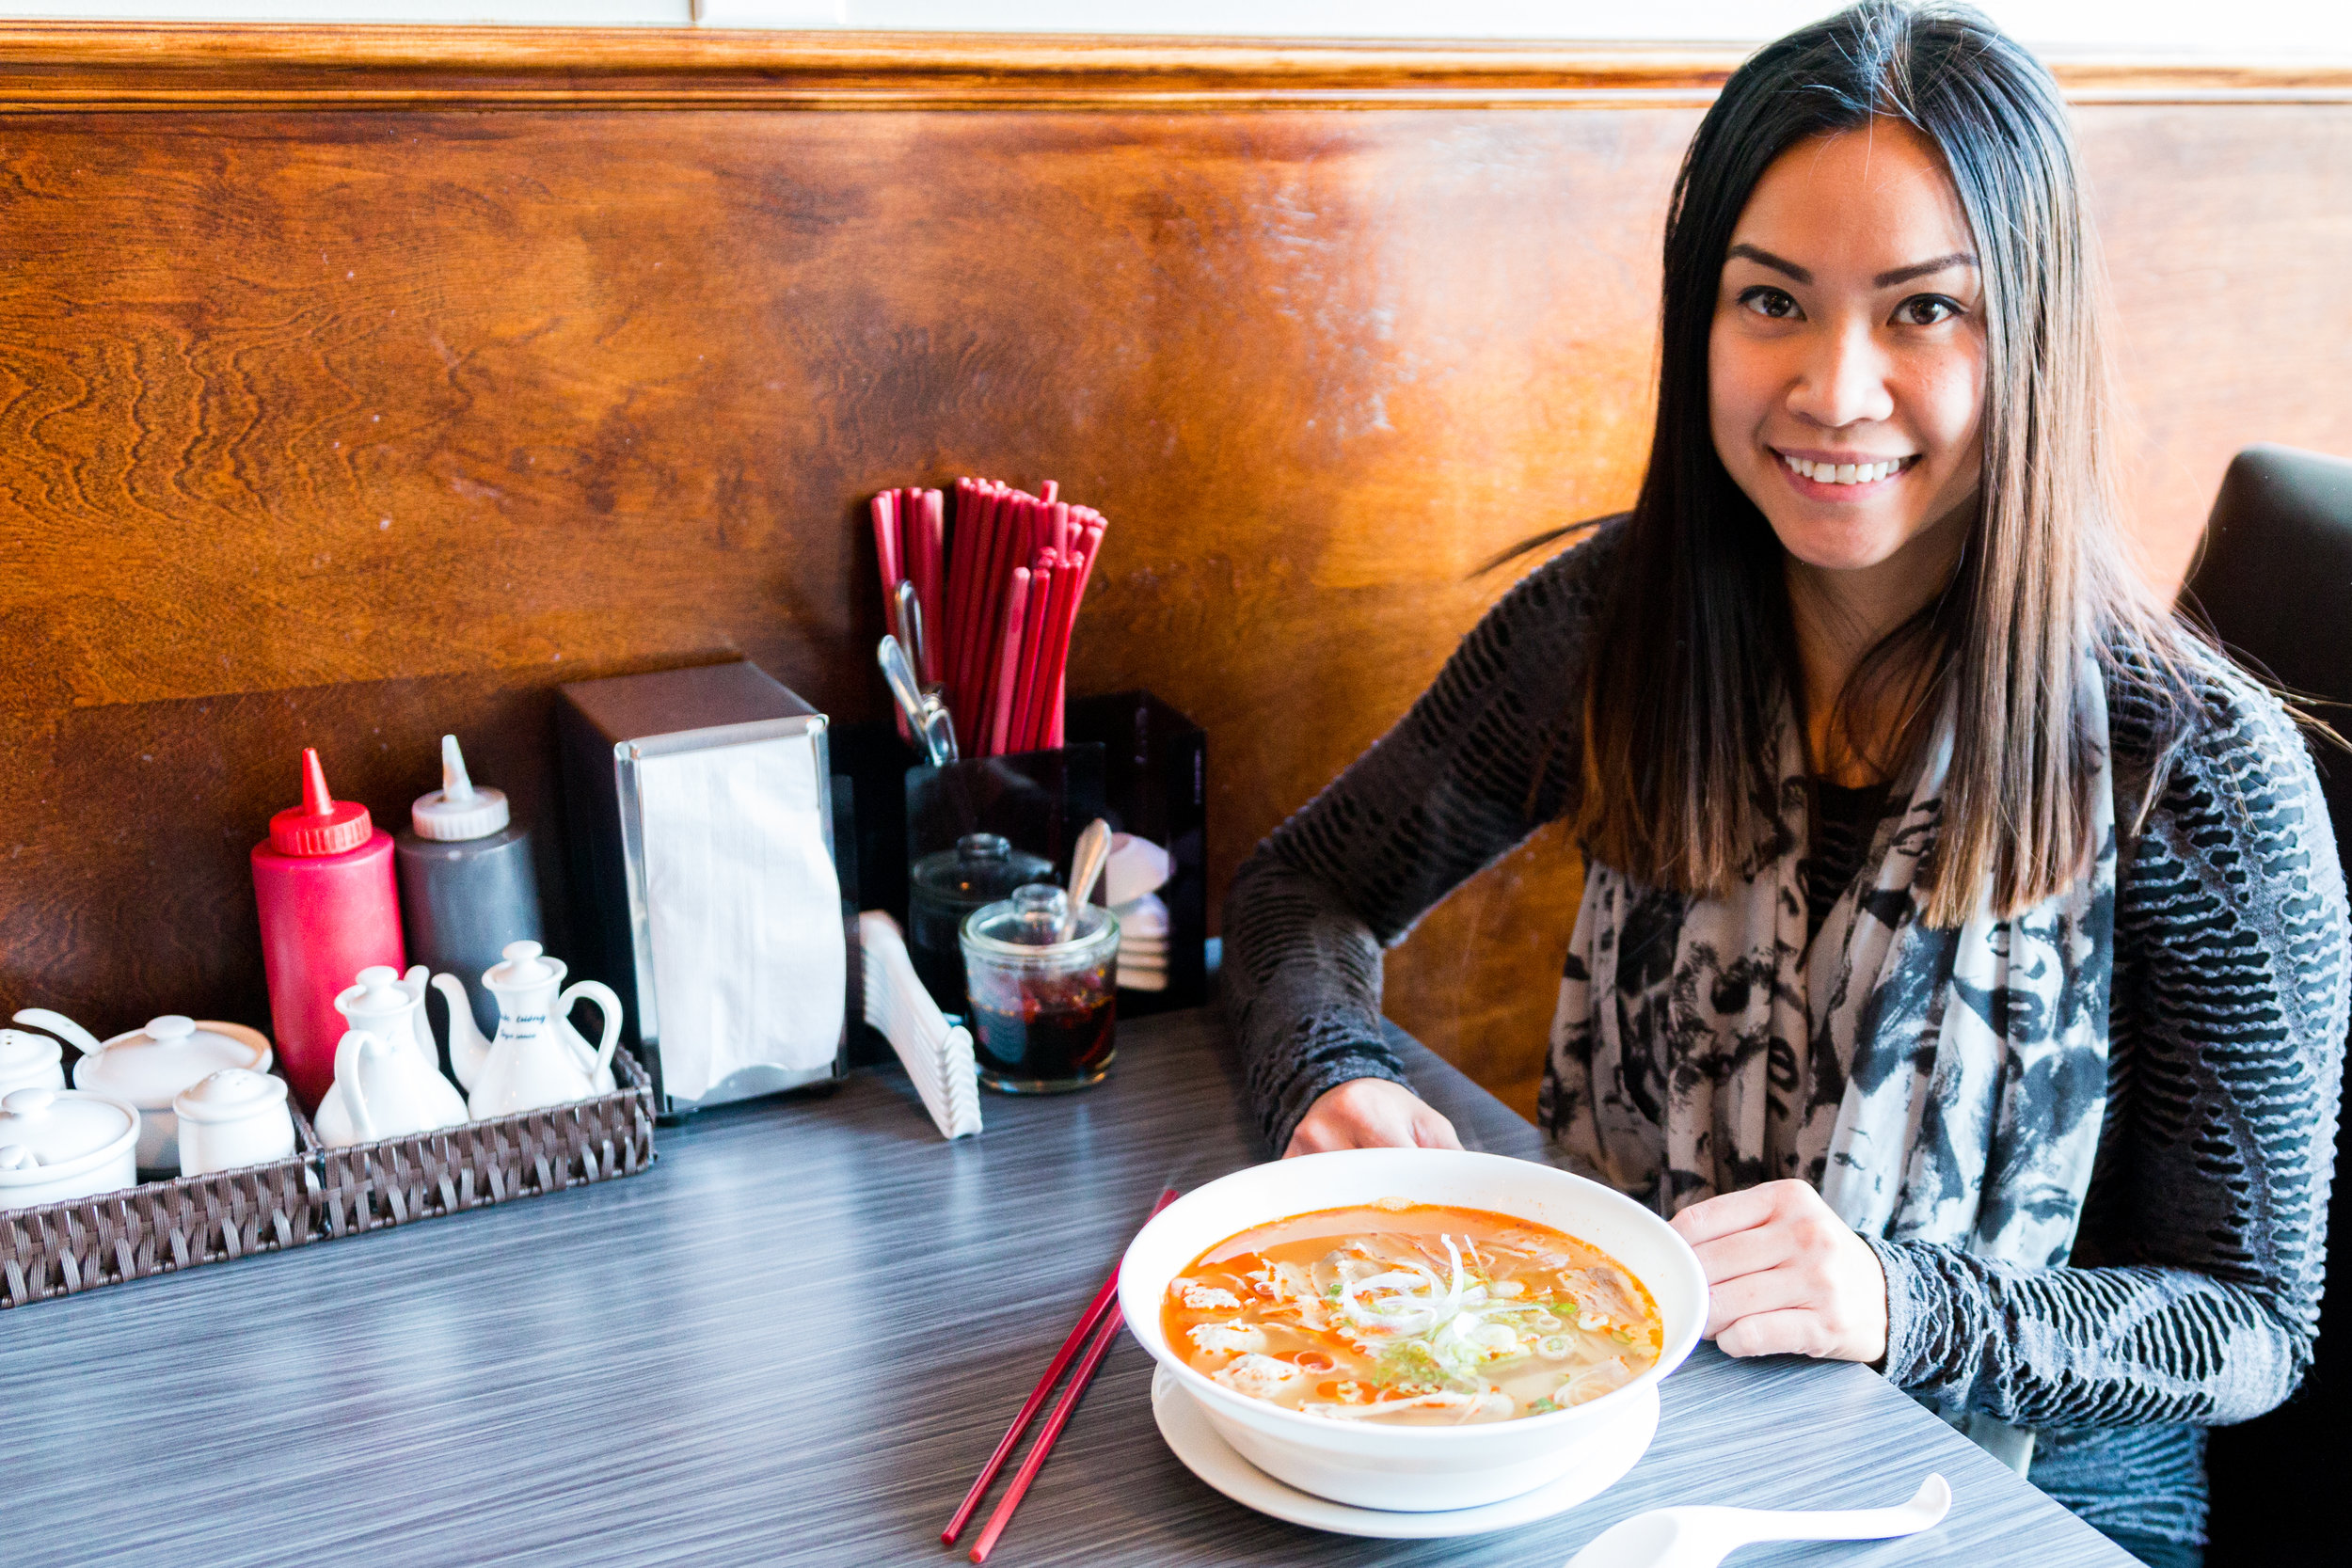 Do, re, mi, pho... Just kidding; no puns here! This place is pho real.  Laura and her family have been serving up authentic Vietnamese fare on Alberta Avenue since 2014. Every dish is crafted with care, and sourced locally, so expect nothing but the best while visiting this cozy establishment.